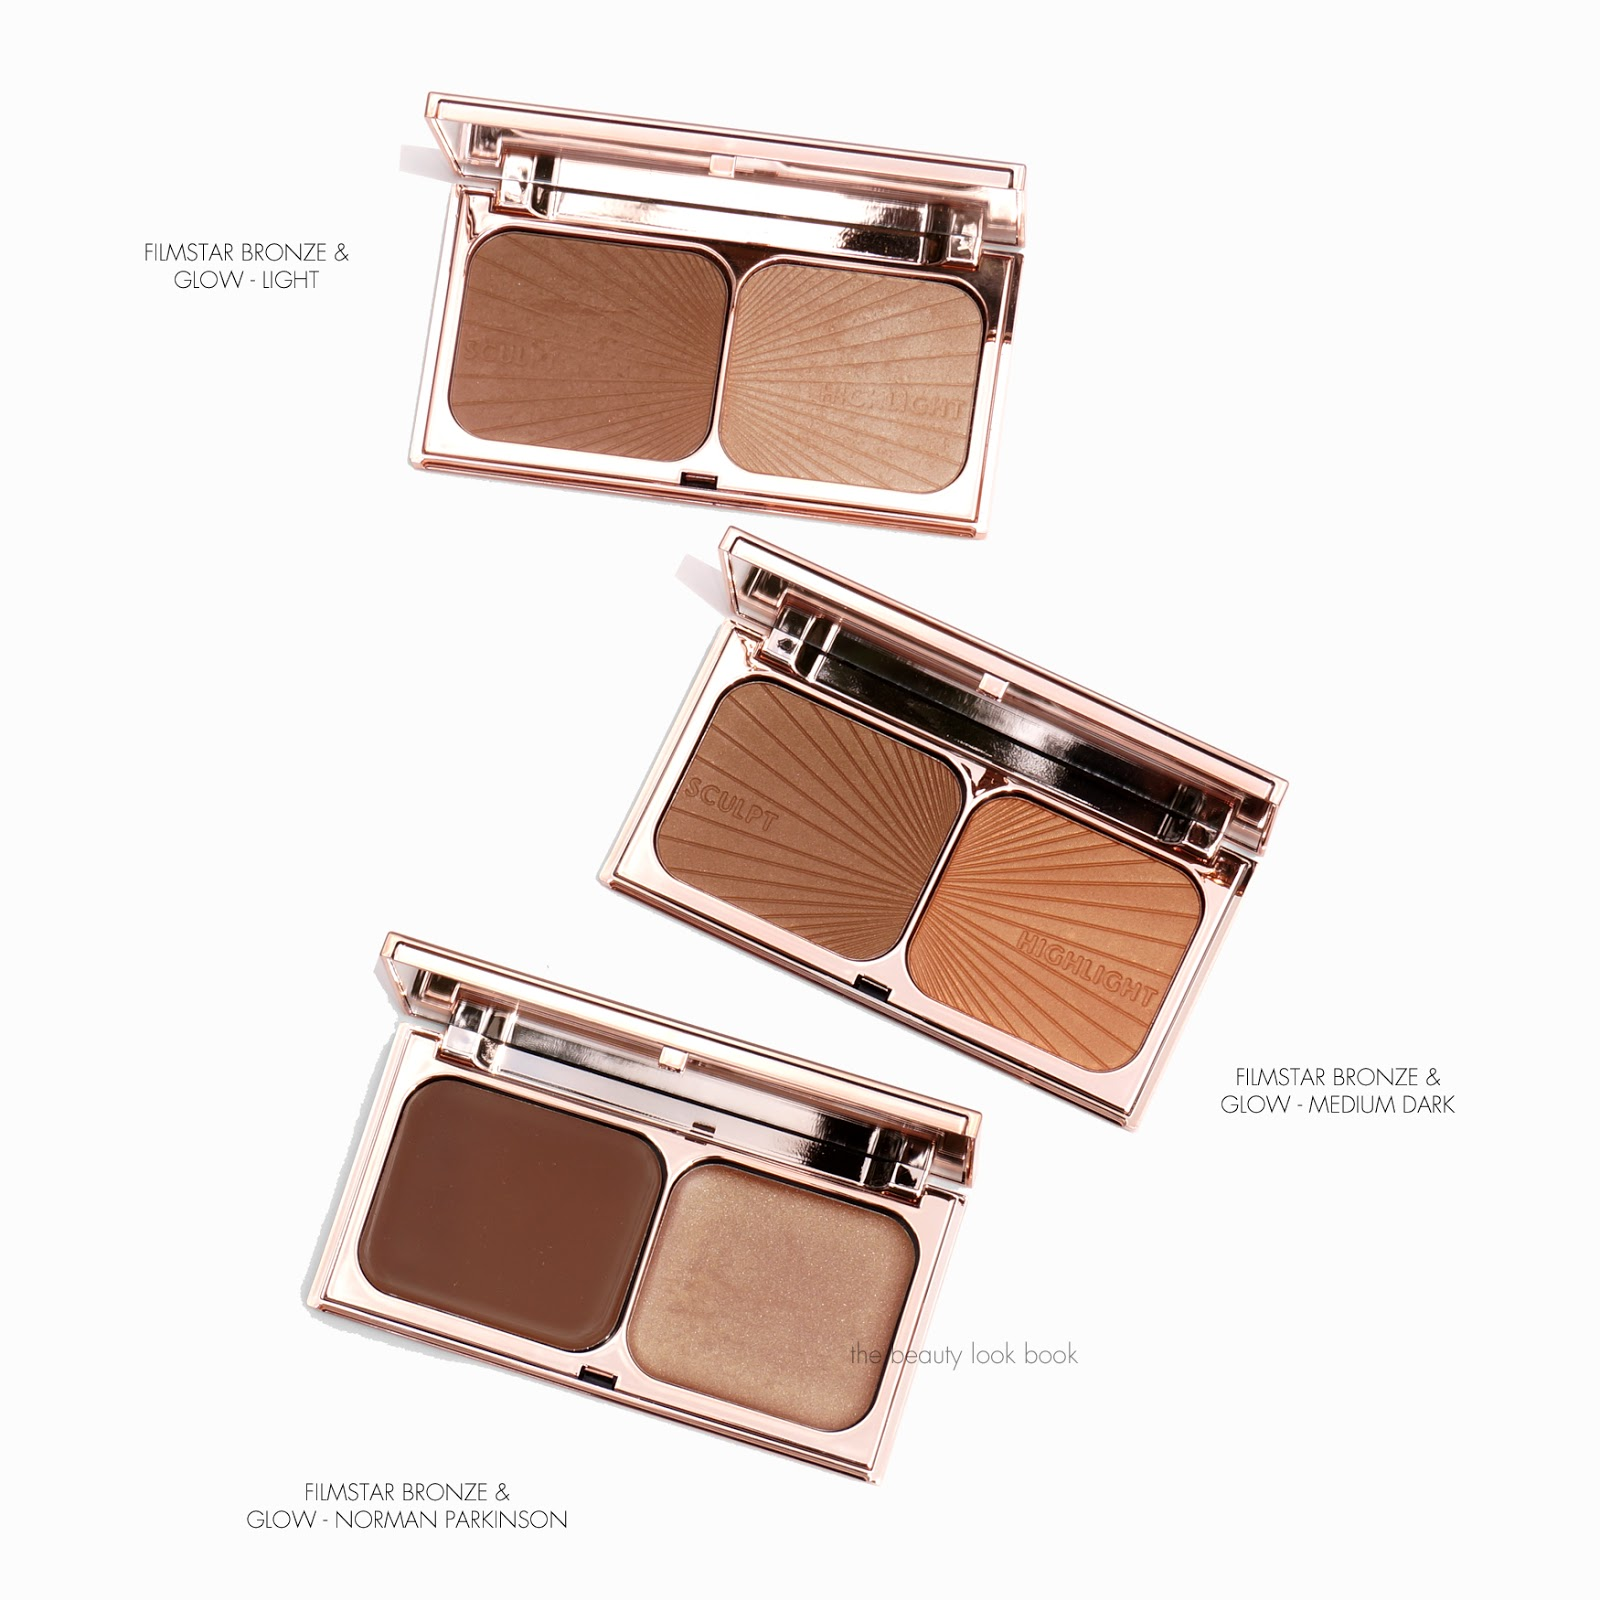 Image result for charlotte tilbury glow